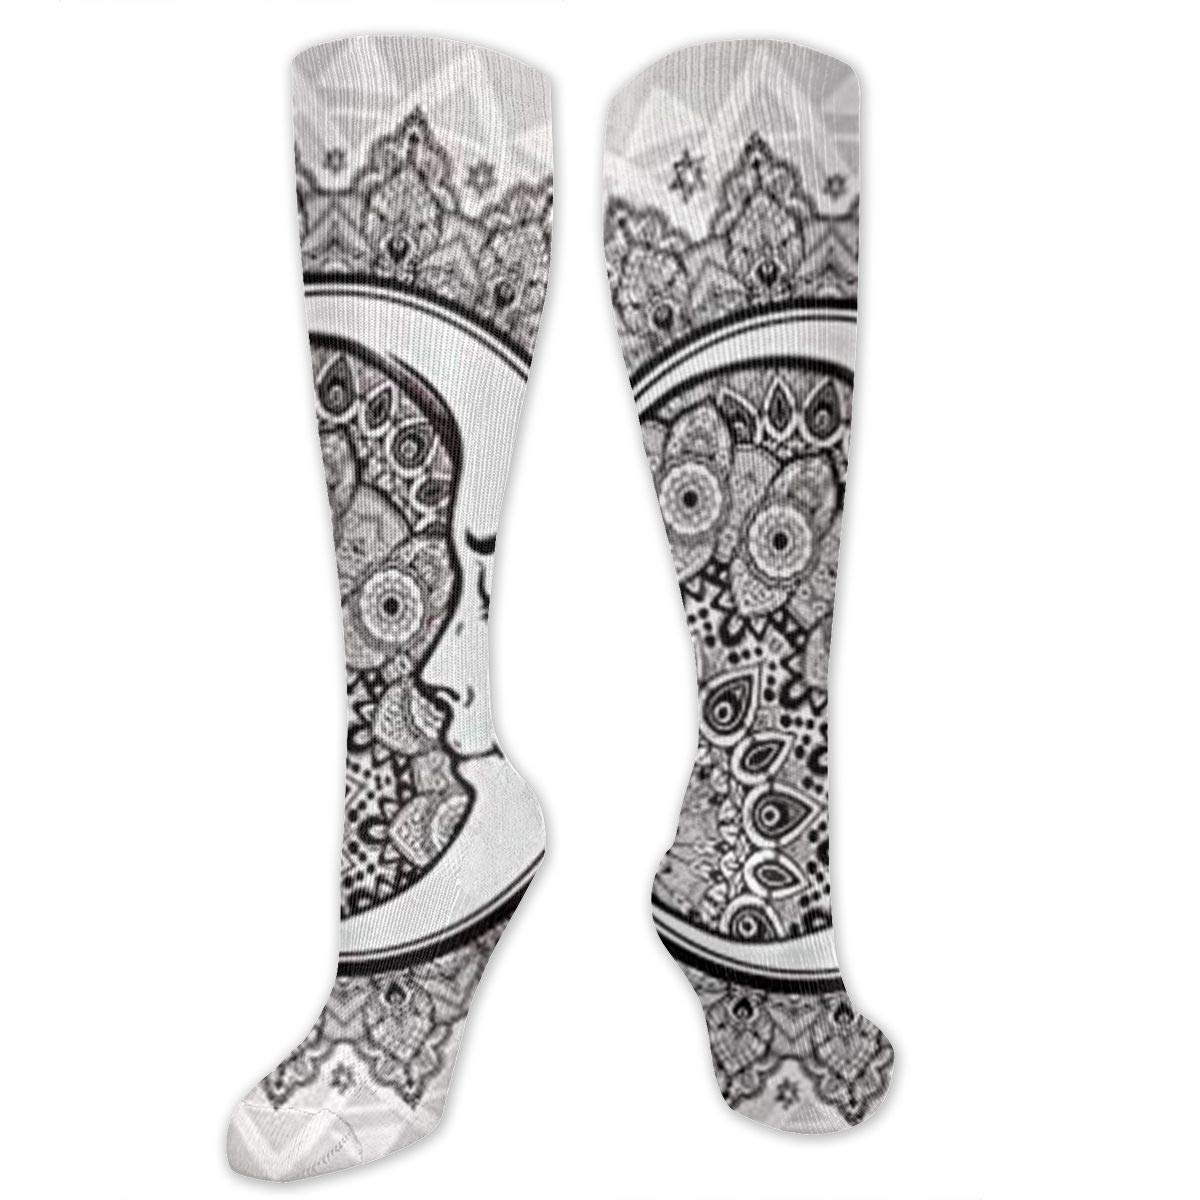 fca4037466 Ornate Crescent Moon Compression Socks Foot Long Stockings Anti Fatigue  Varicose Veins Socks for Men Women ...